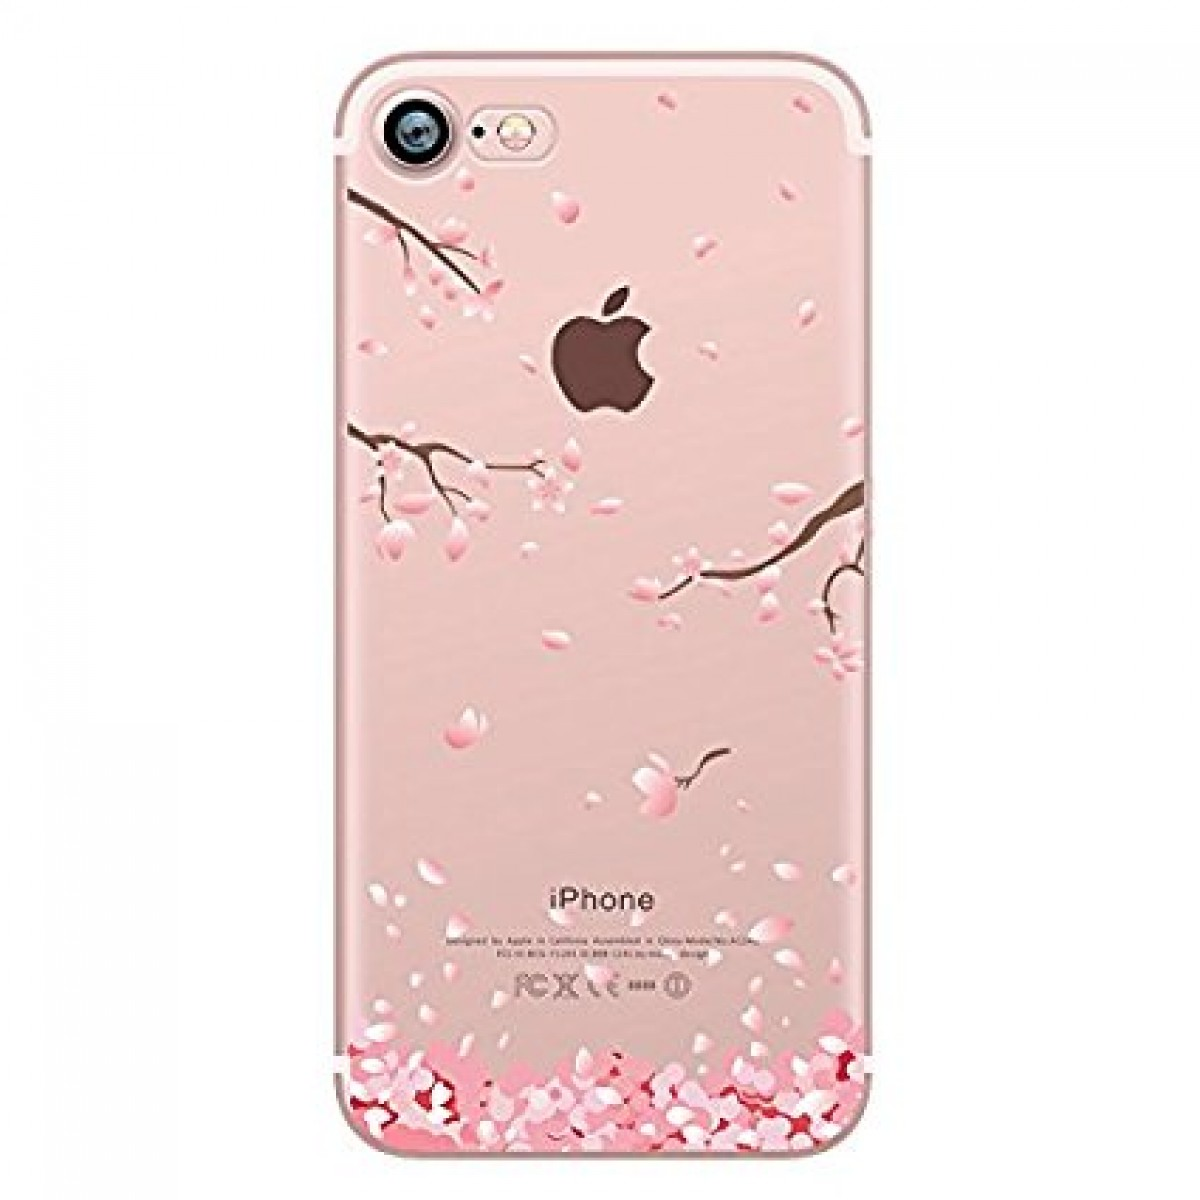 timeless design 2b134 6d650 iPhone 8 Case, iPhone 7 Case, Hepix Cherry Blossom Floral Print Transparent  Case with TPU Edge Bumper Soft Protective Cover [4.7 inch]